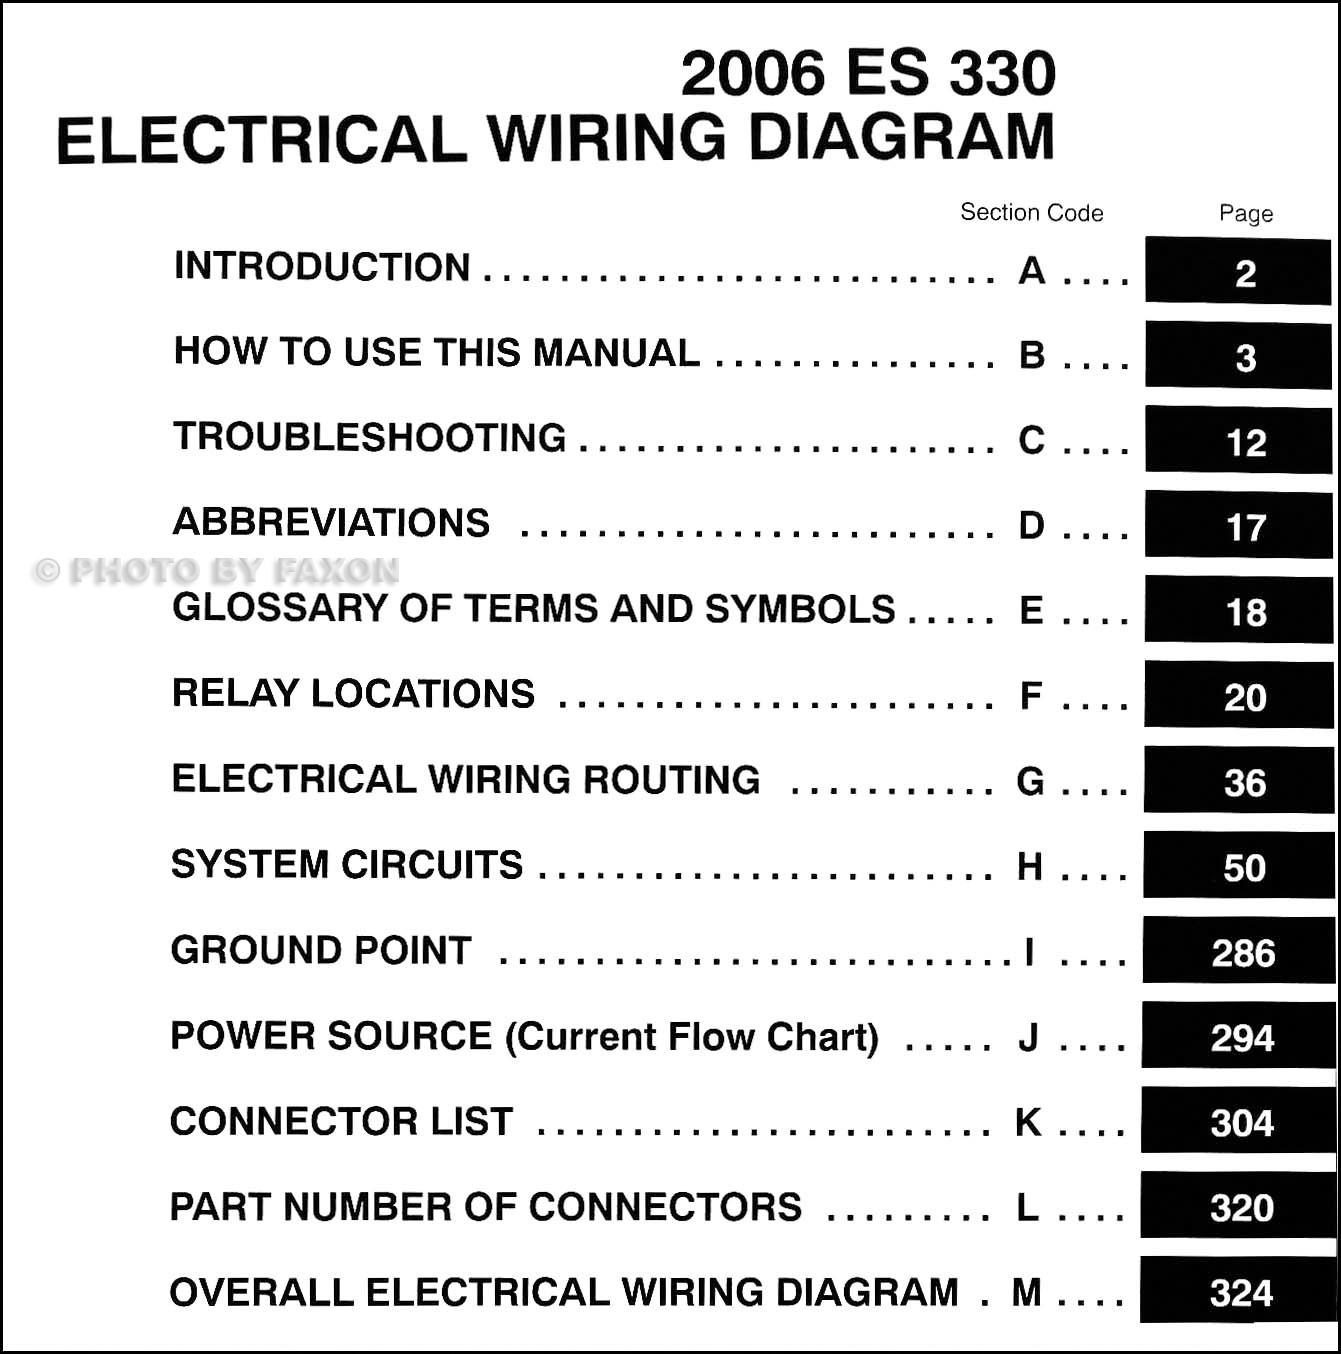 Lexus Es 330 Wiring Diagram Great Installation Of 350 2006 Manual Original Rh Faxonautoliterature Com 2004 Es330